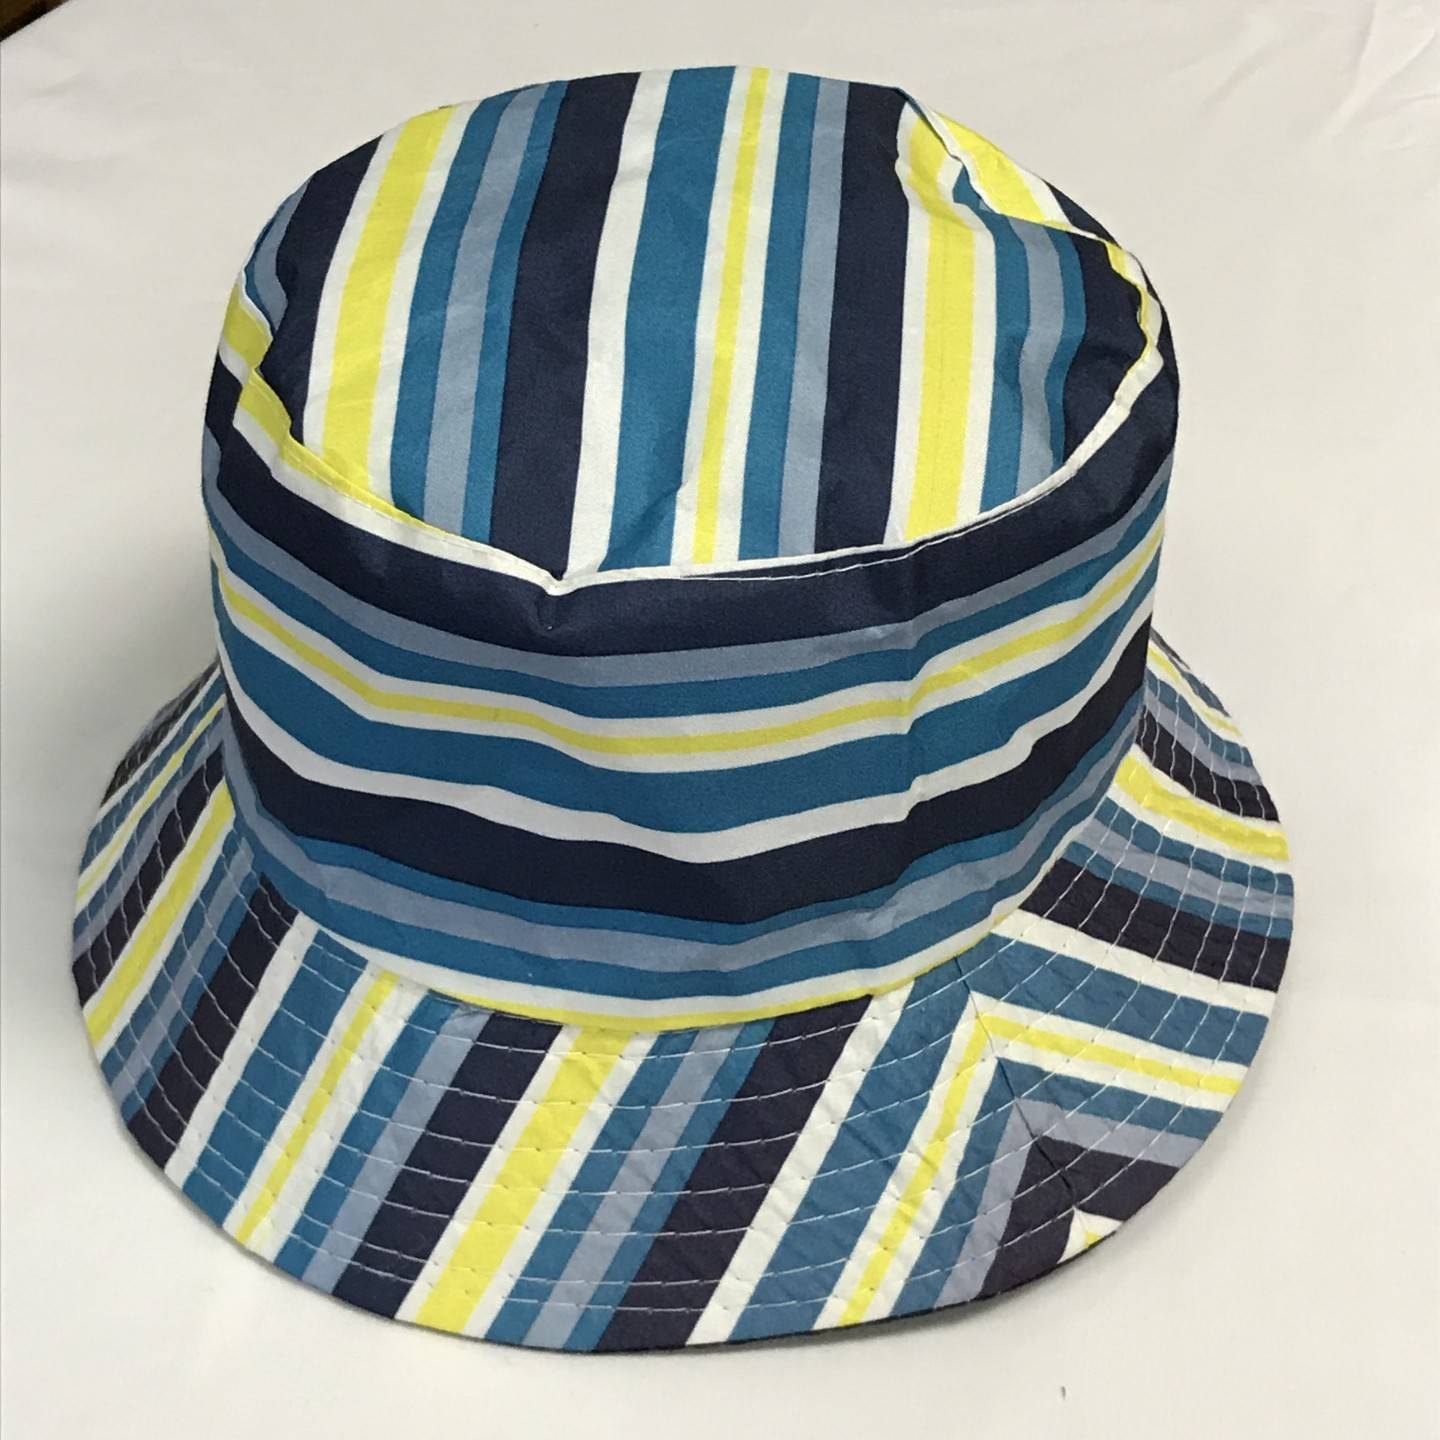 BLUE AND YELLOW REVERSIBLE BUCKET HAT AGES 12+